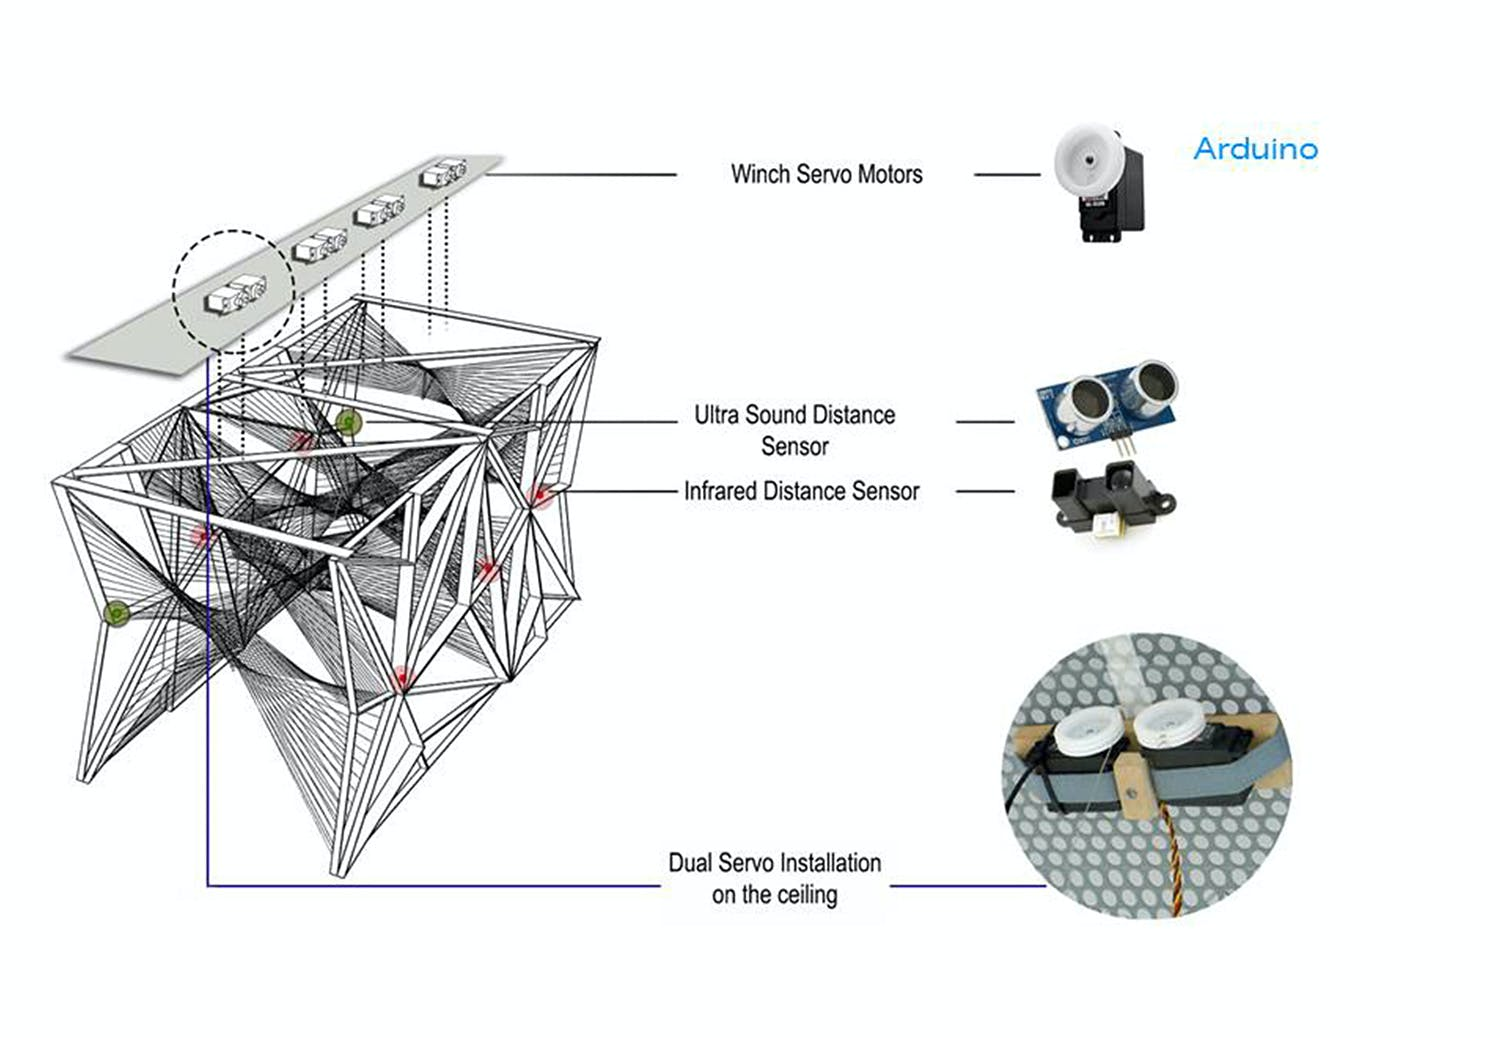 Bustler Architecture Competitions Events News Infrared Proximity Sensor Wiring Diagram Related